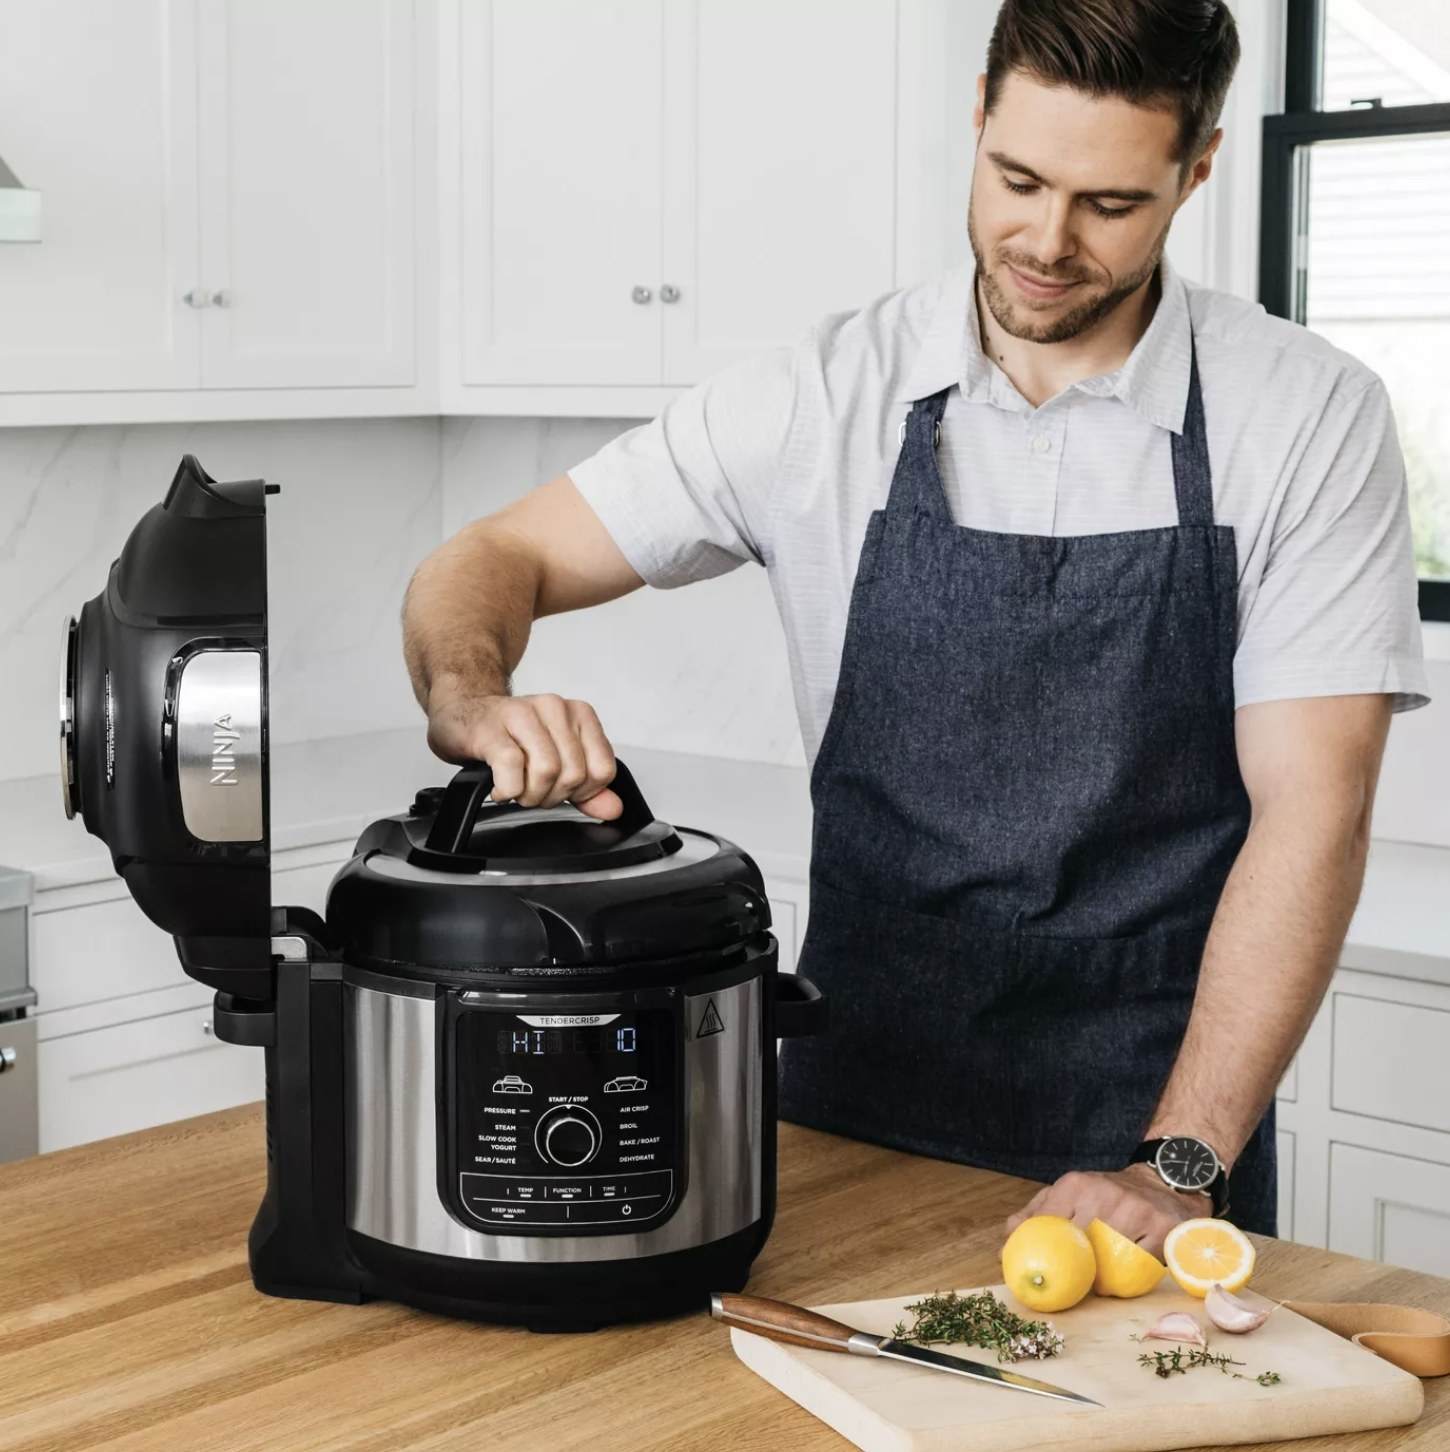 Person is lifting the lid of a Ninja pressure cooker